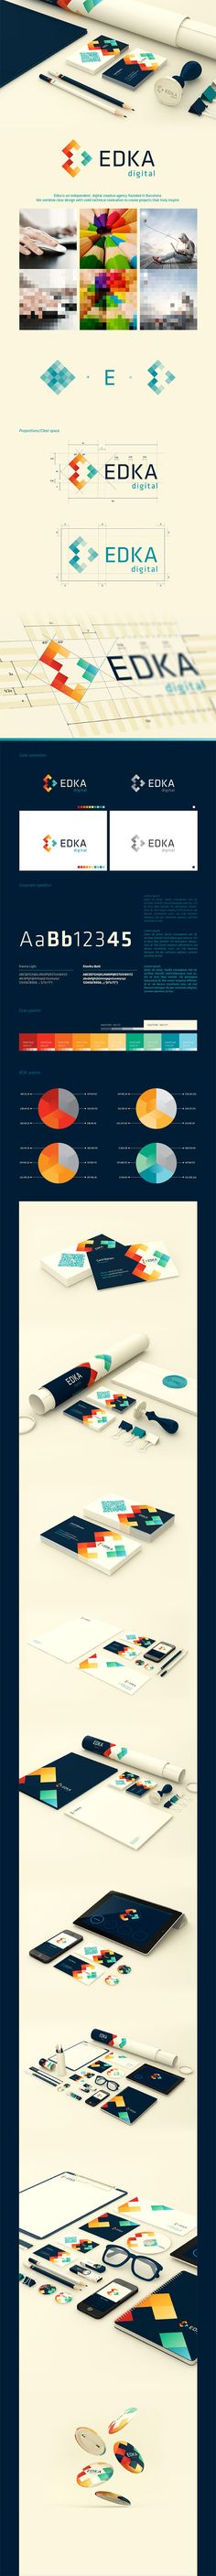 Branding process with final results // identidad edka #branding #graphicdesign #diseñografico